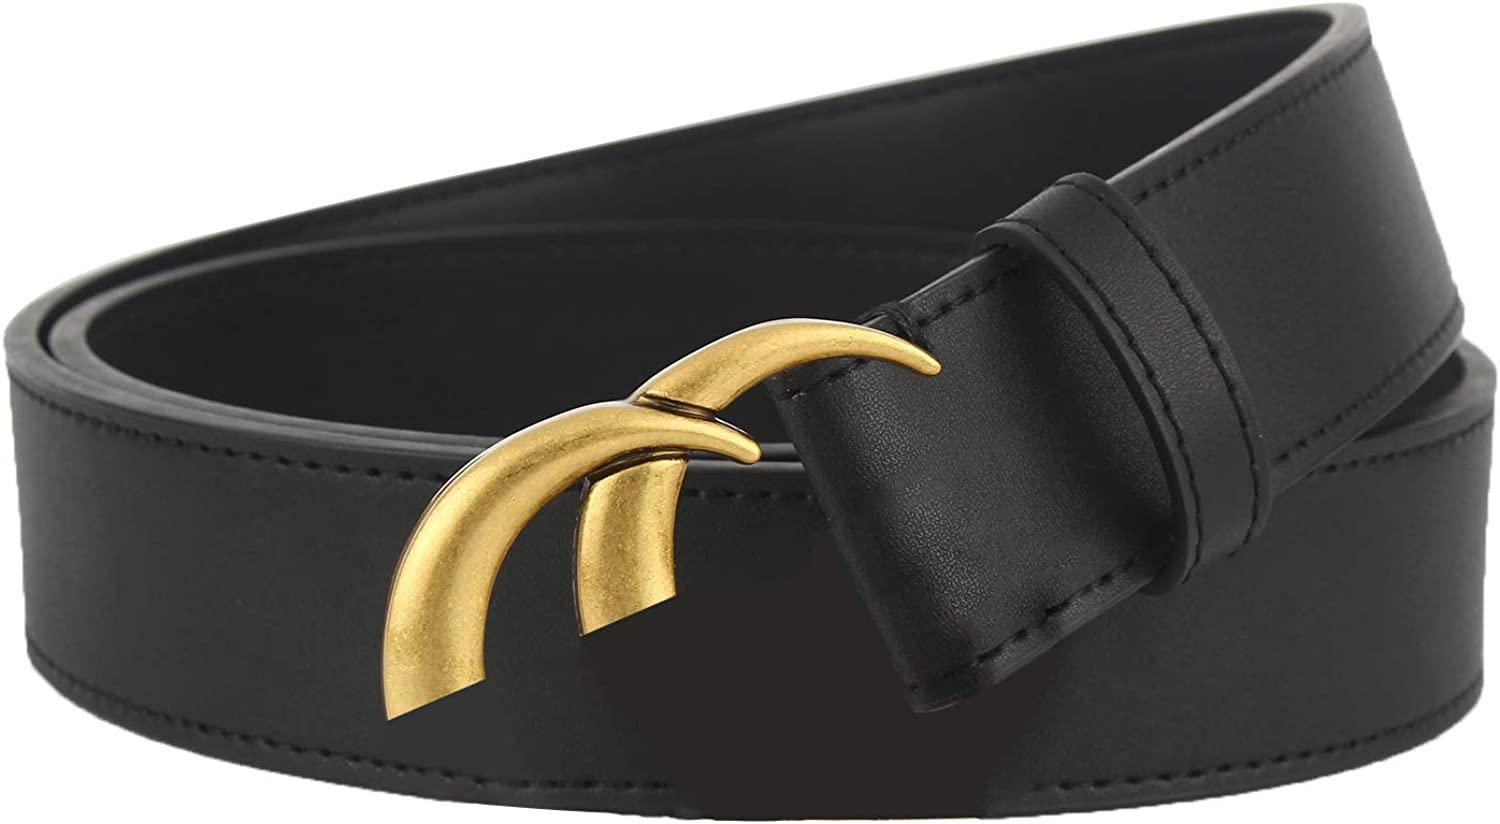 Mens Womens Double Letter Buckle Classical Leather Belts